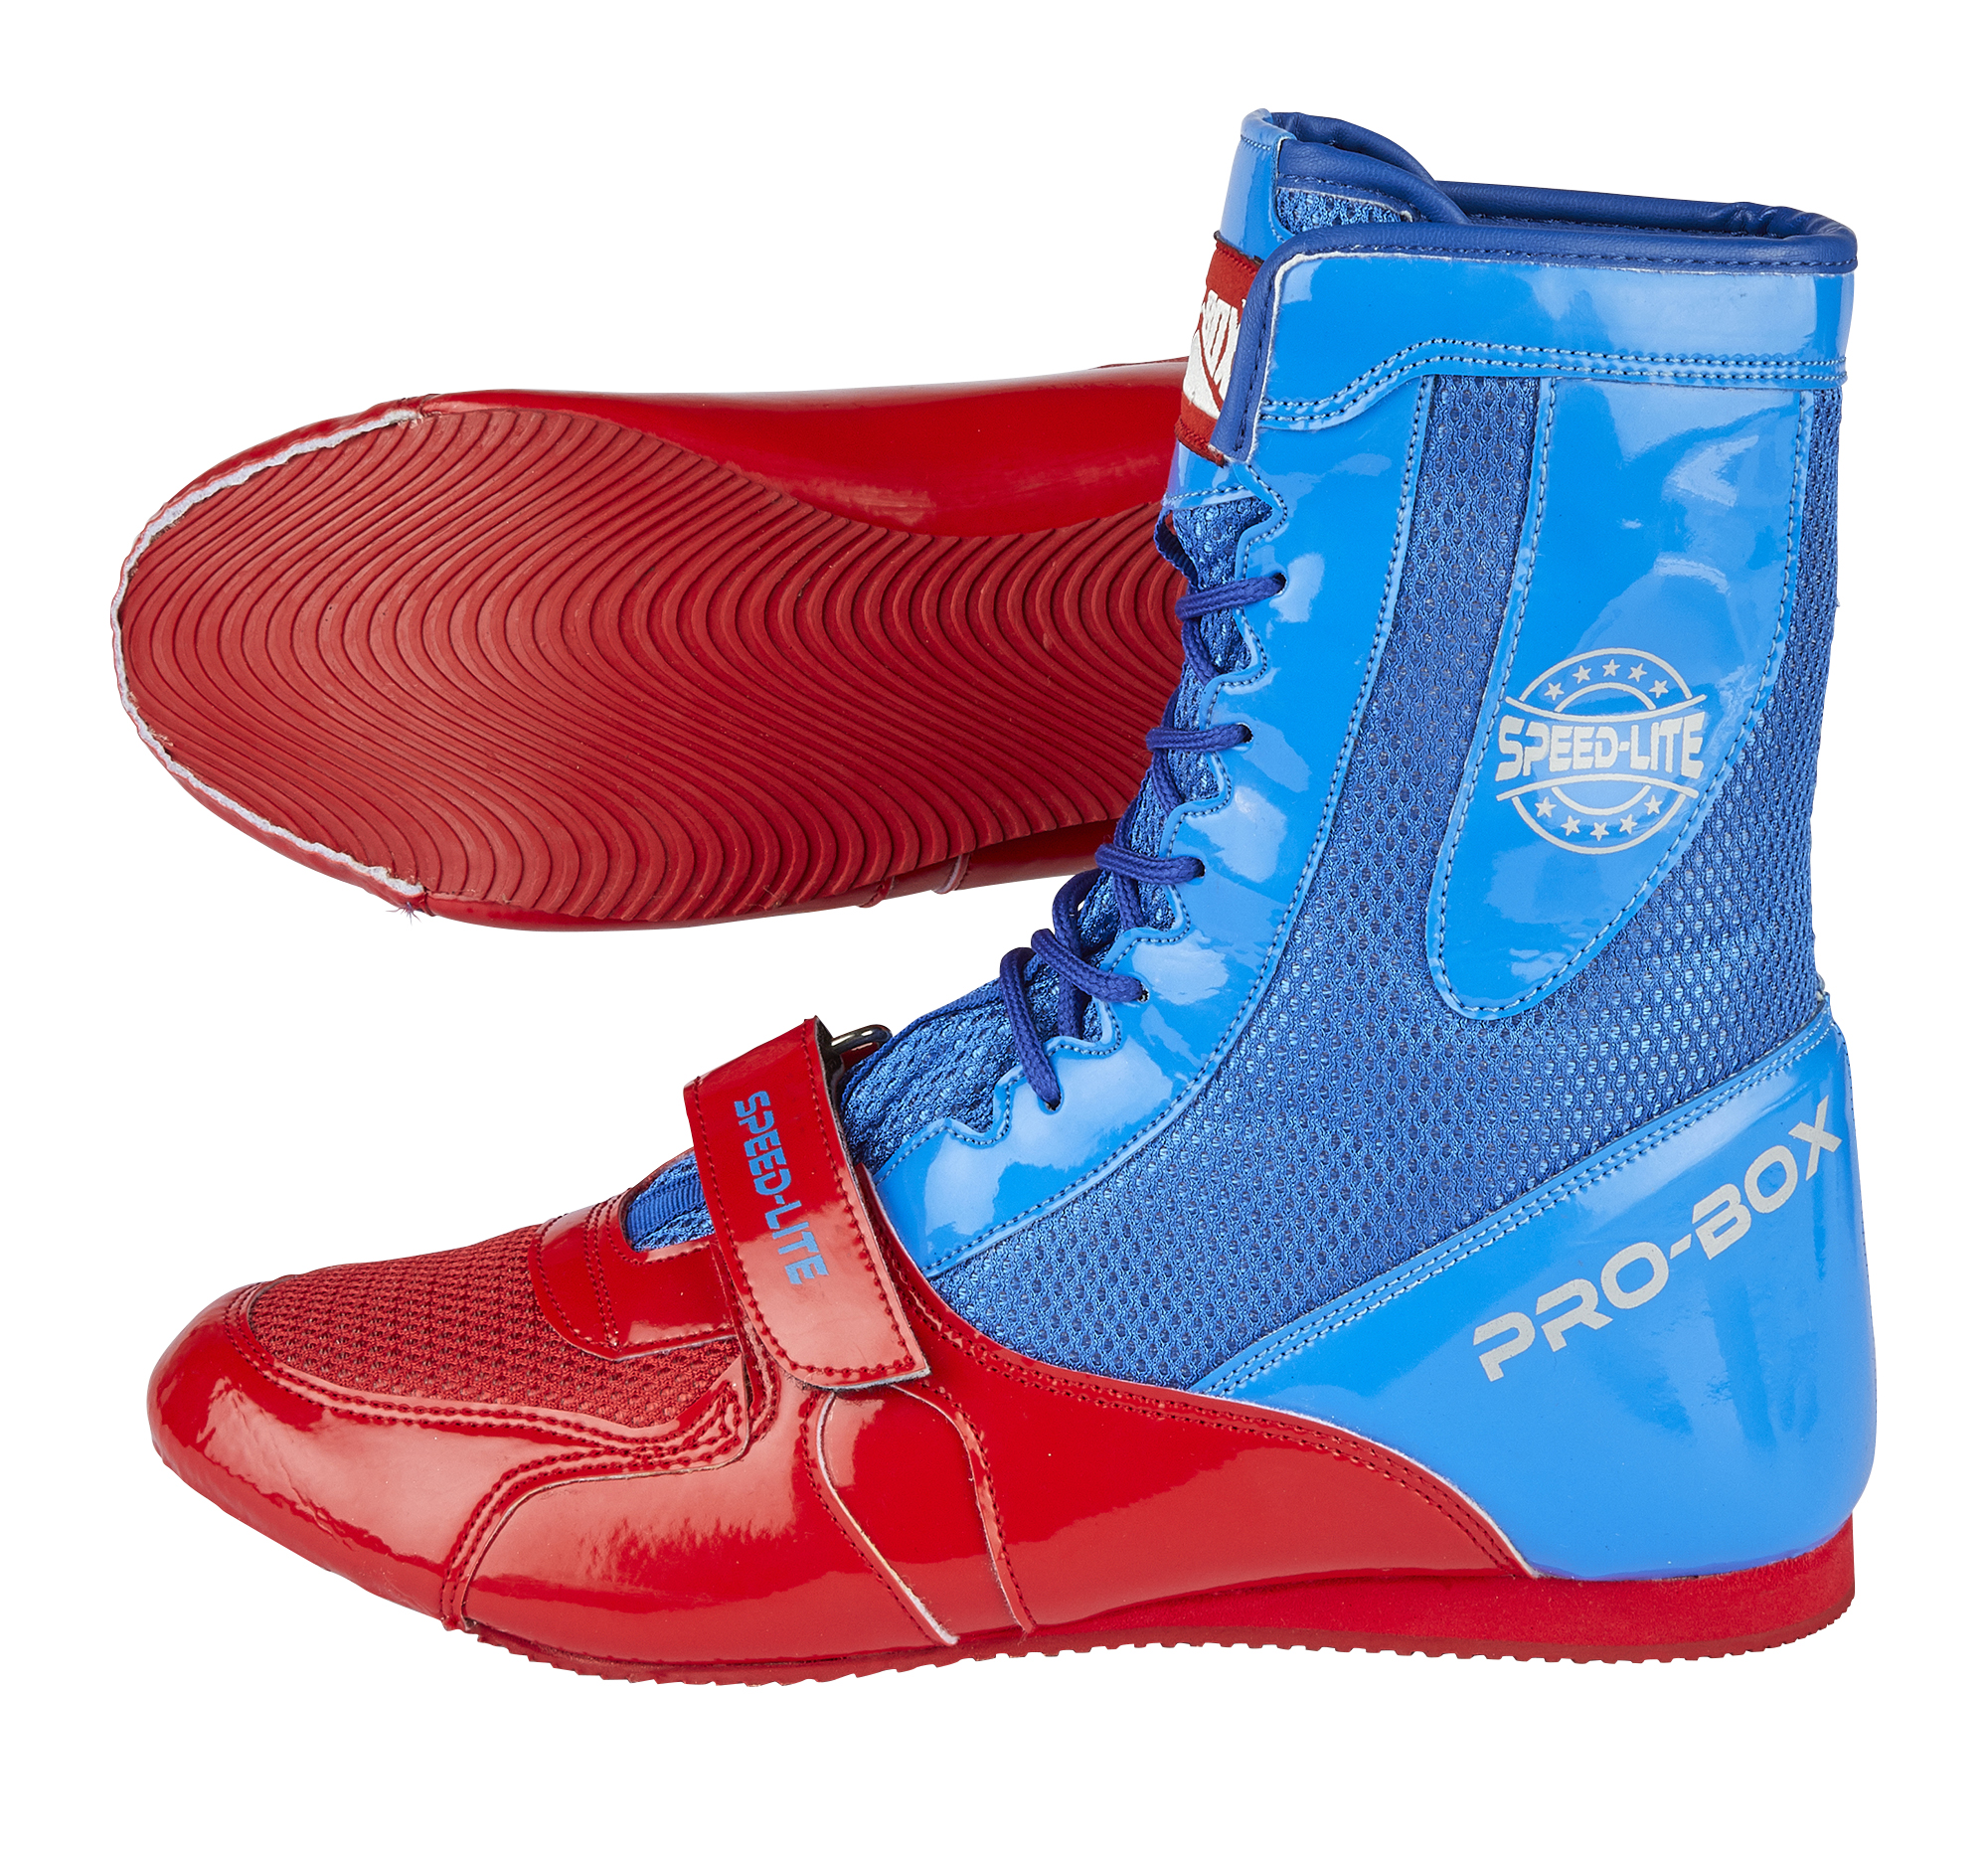 SPEEDLITE BLUE AND RED BOOT